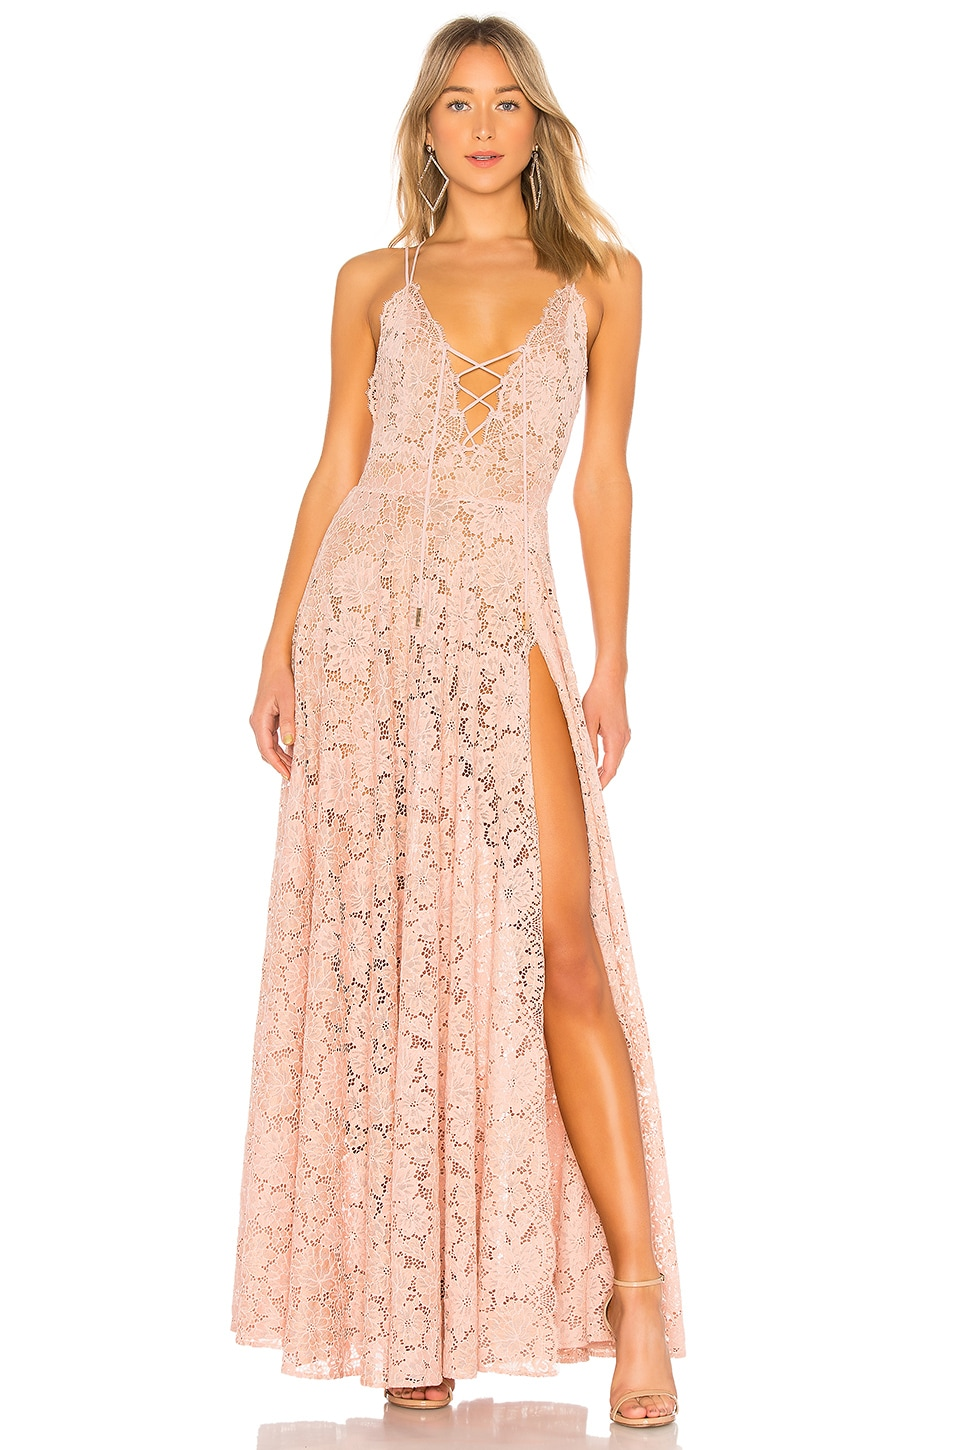 MICHAEL COSTELLO X REVOLVE VICTORY GOWN